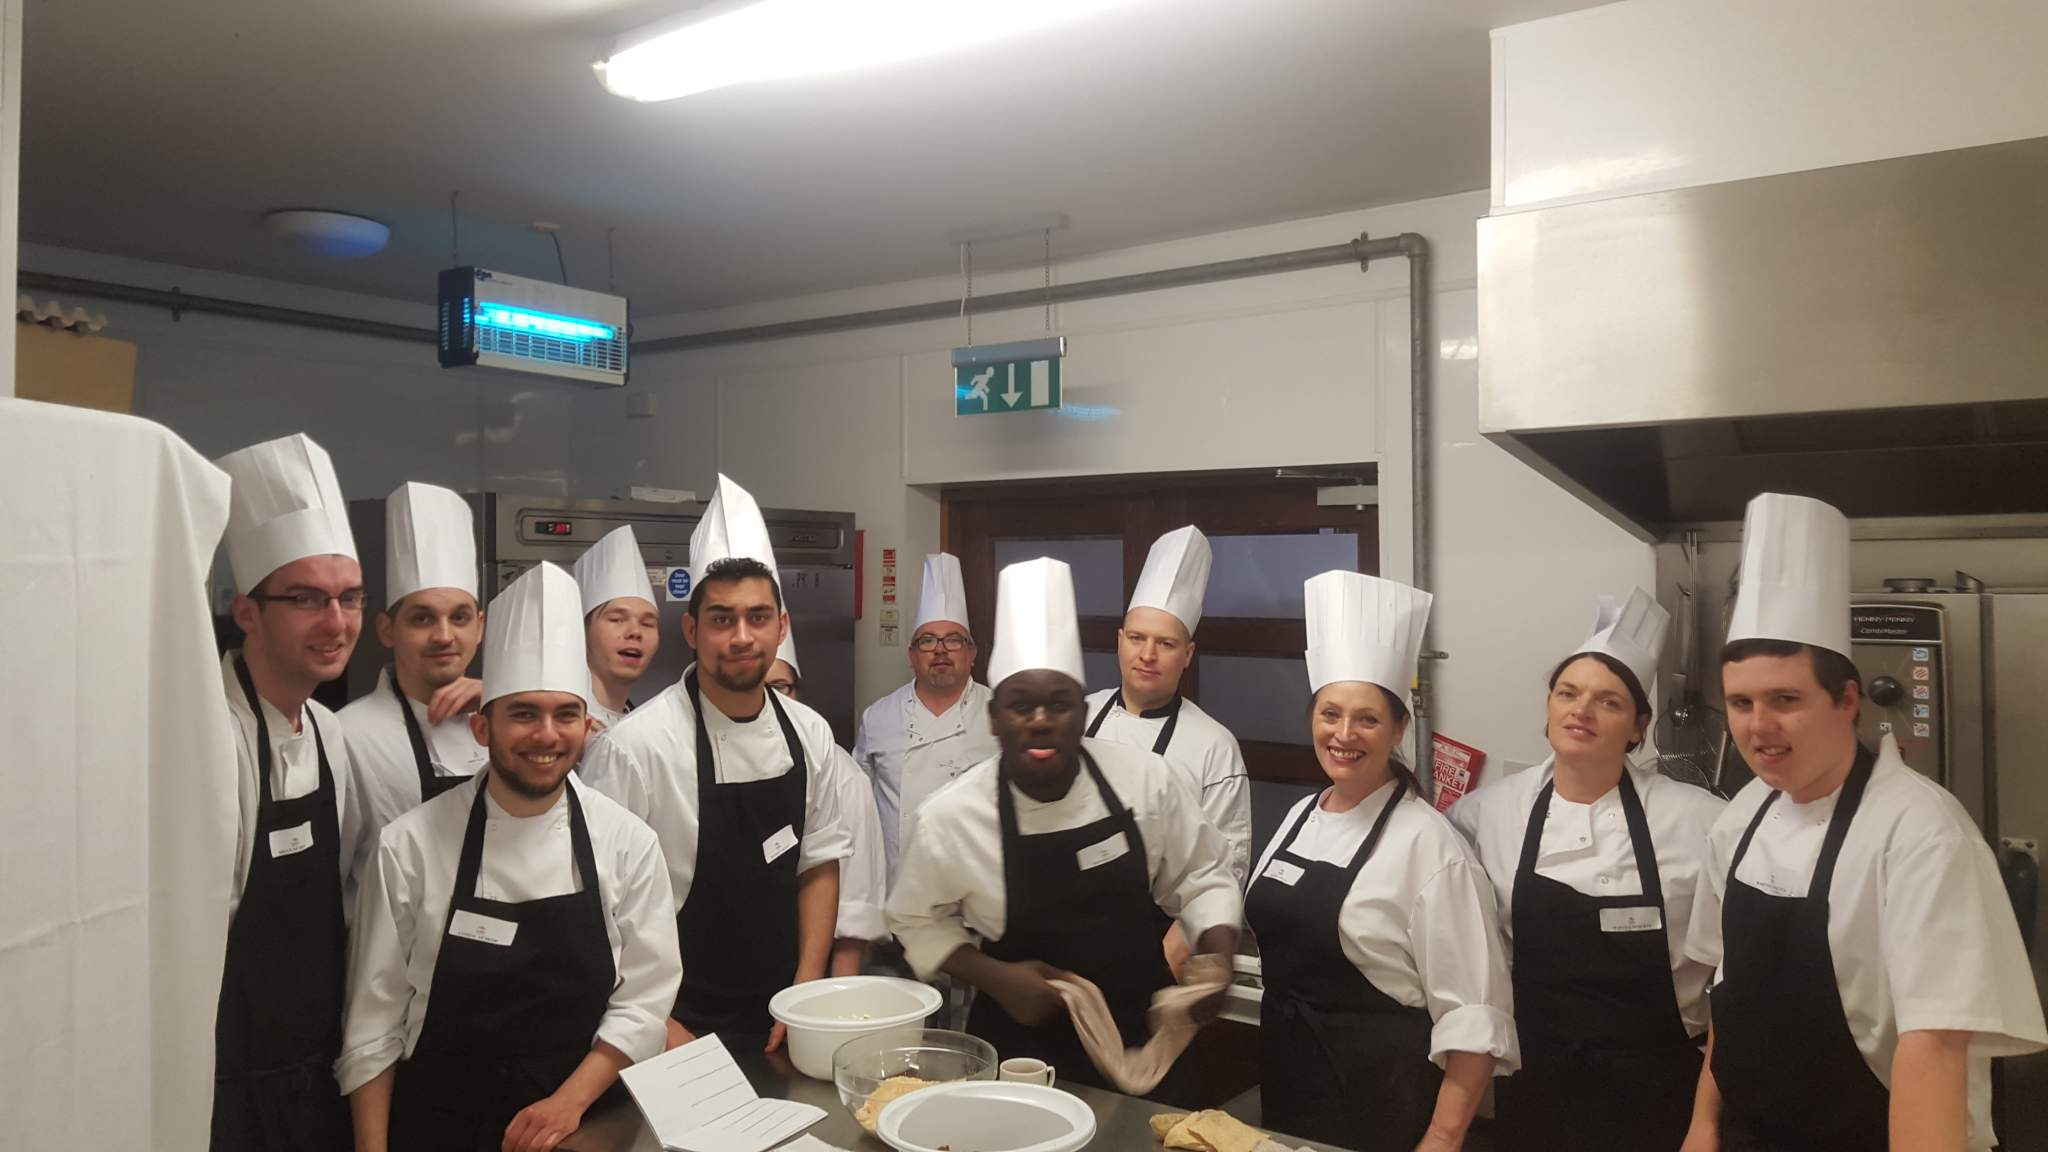 image of a culinary skills group with their chefs hat on